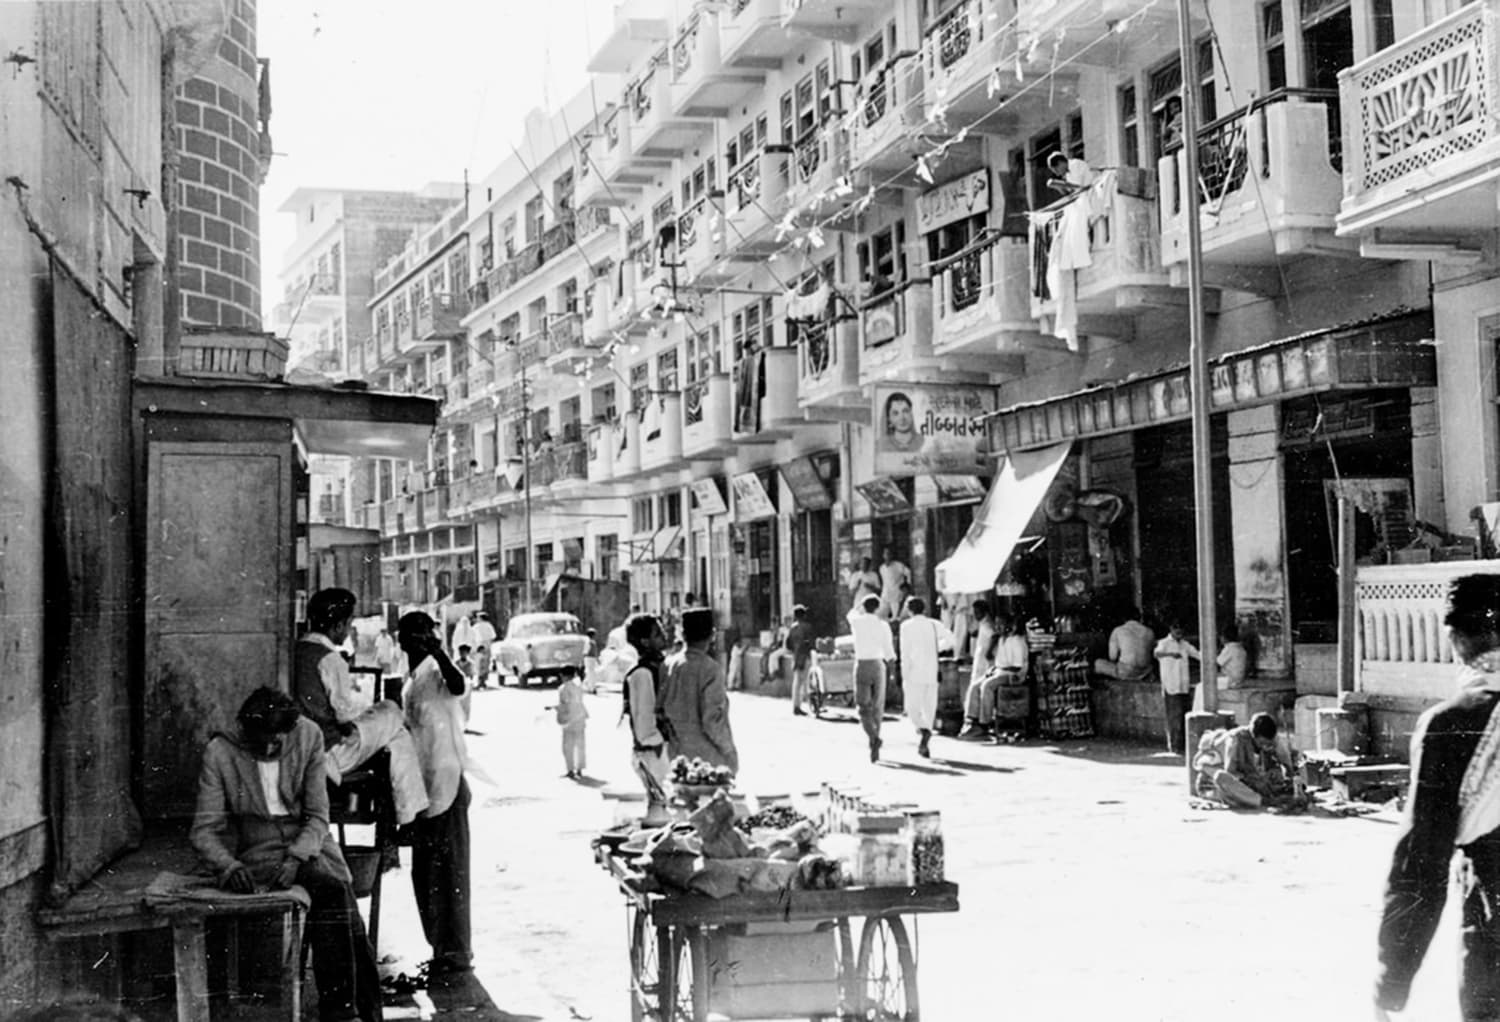 Karachi's Burns Road area in 1961. The area, first developed as a posh locality by the British, had become a middle-class neighbourhood in the 1960s, largely populated by Mohajirs.